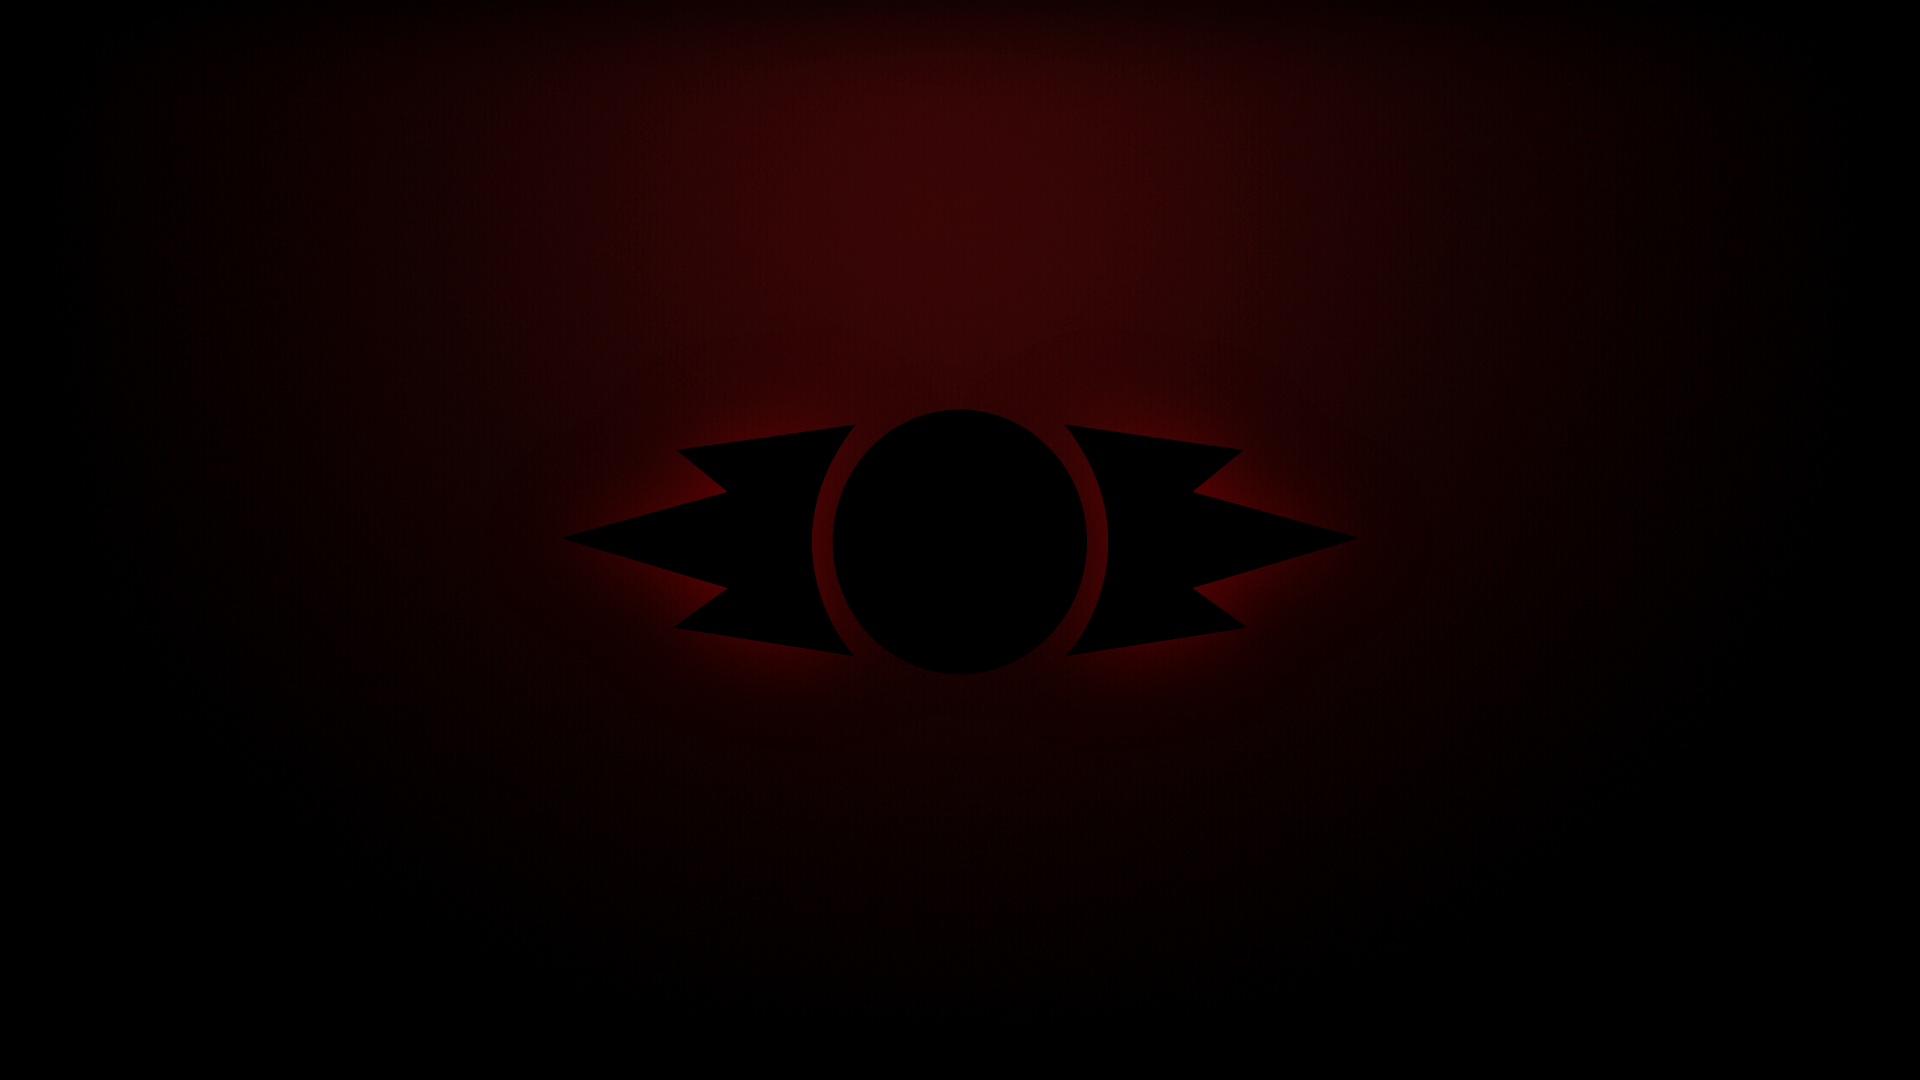 Sith Symbol The sith one as promised 1920x1080